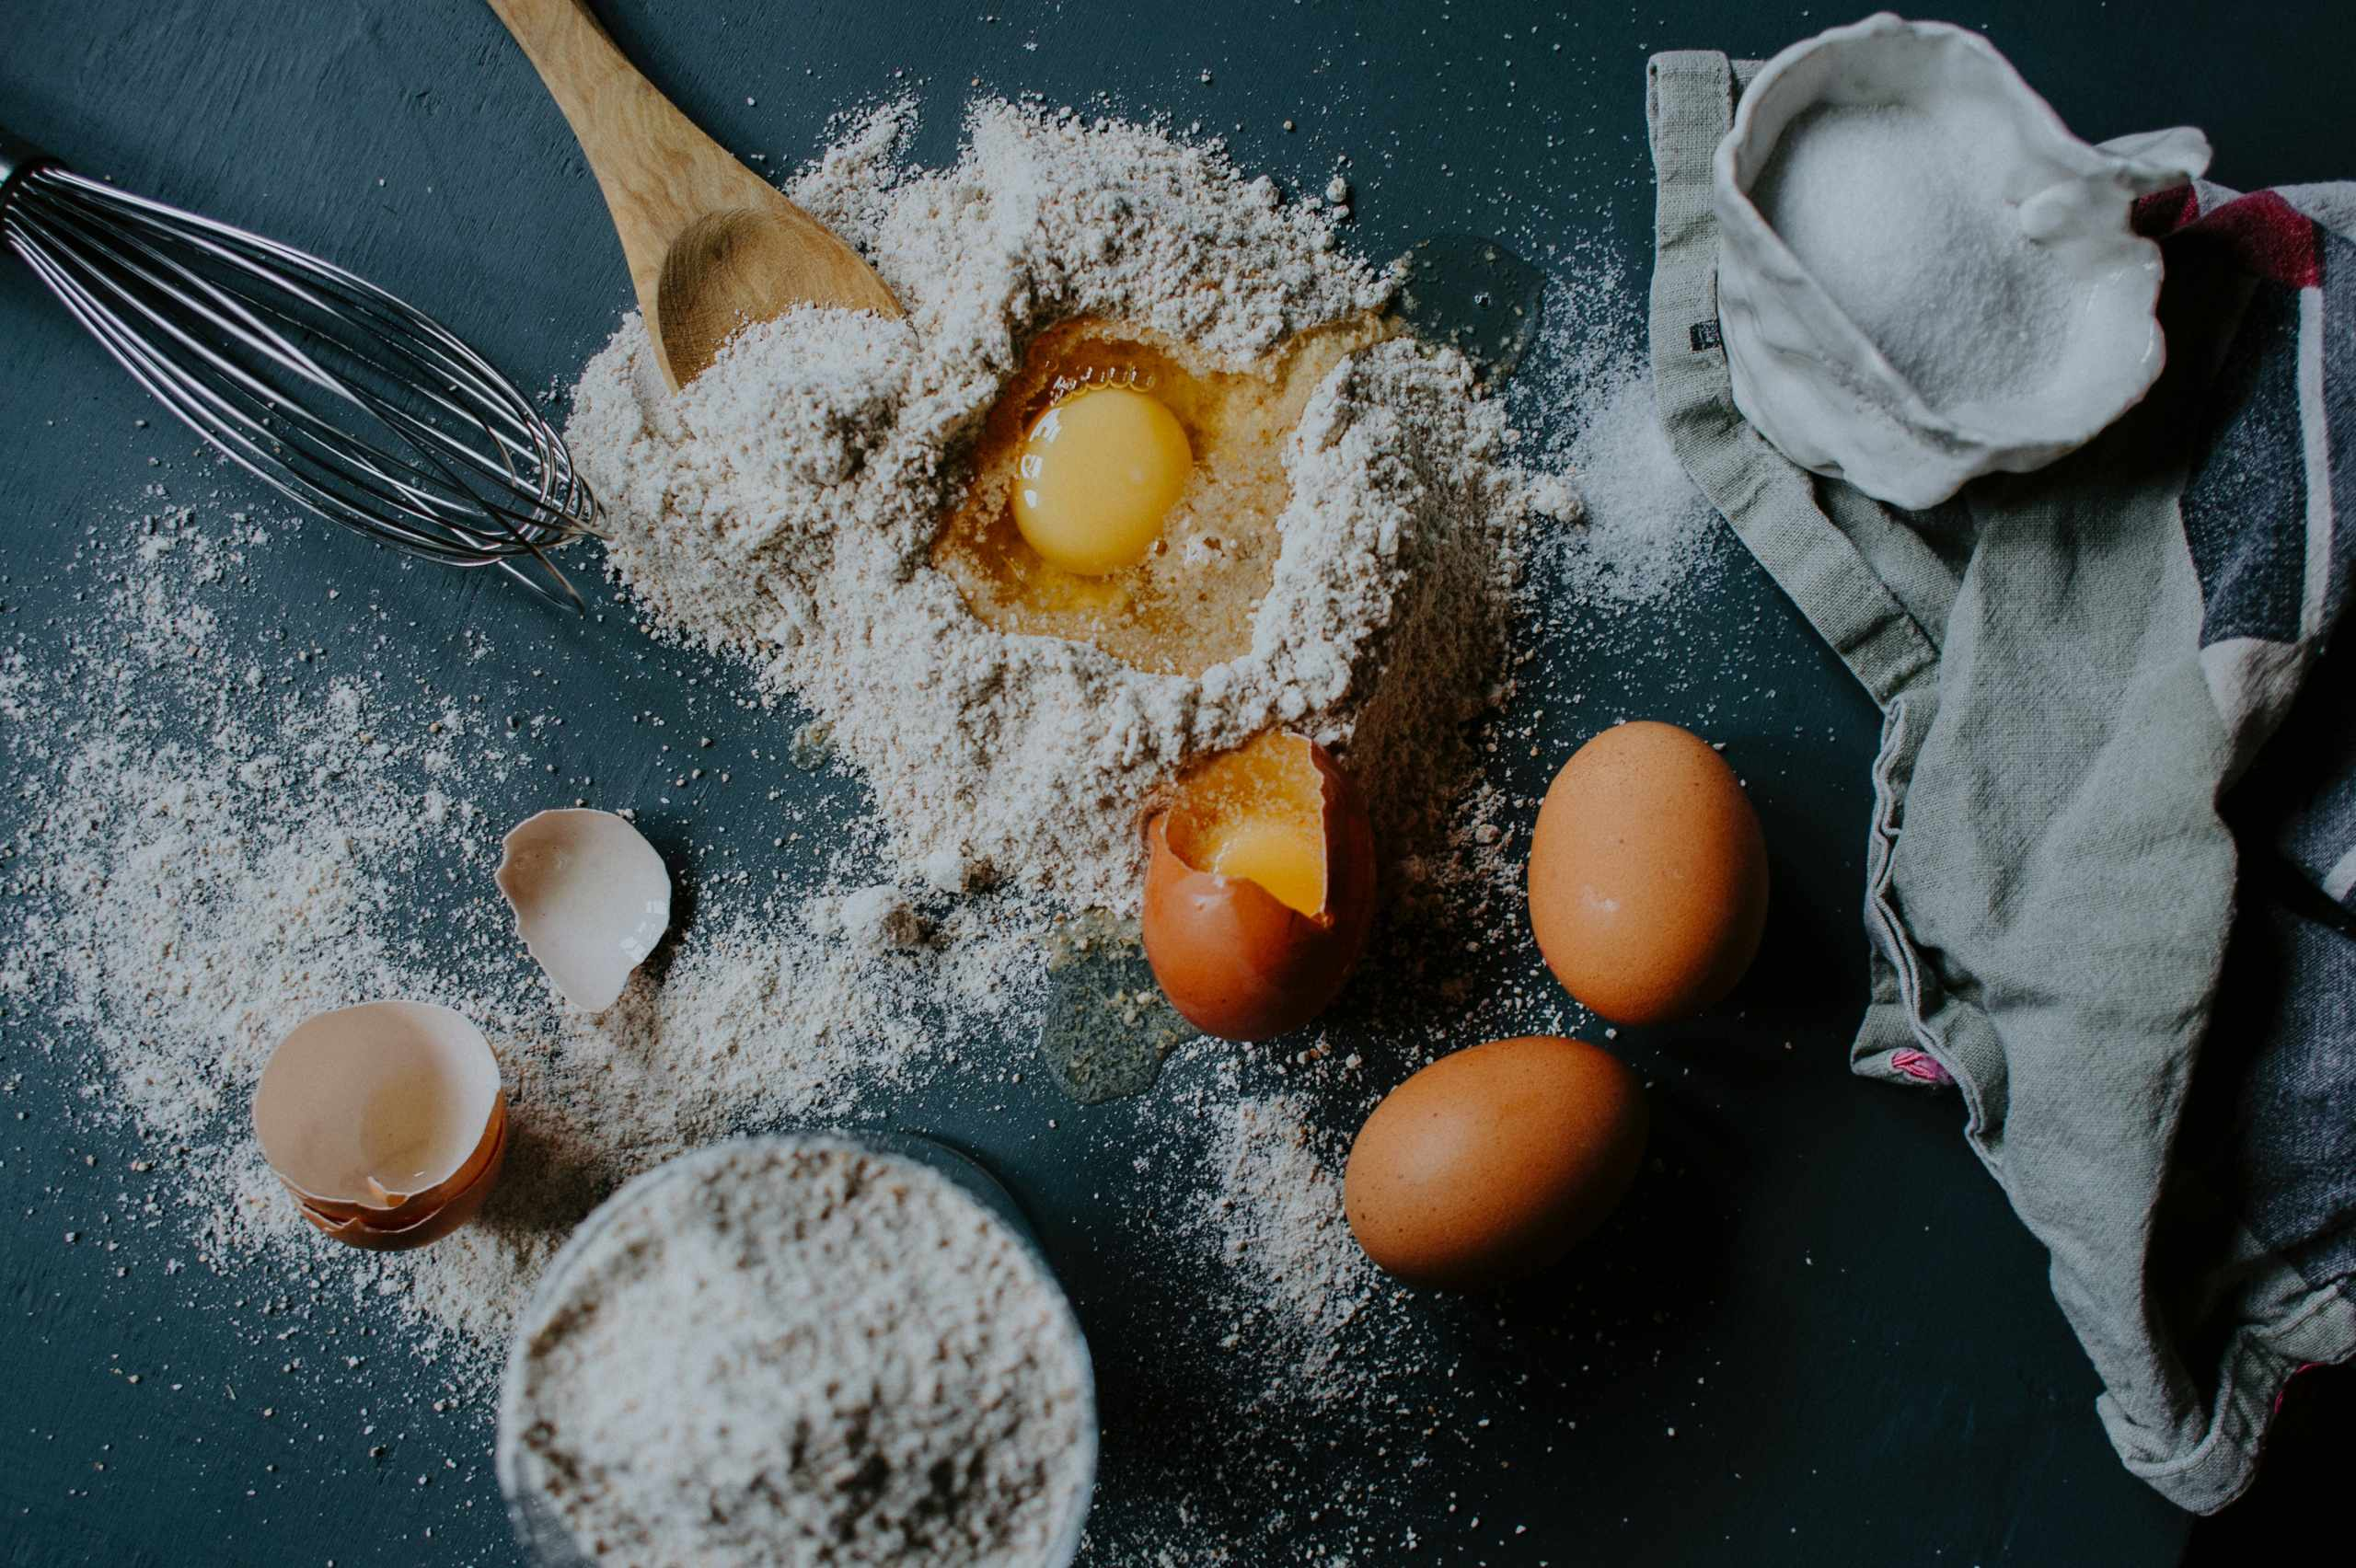 Know how to boil eggs and other special egg dishes